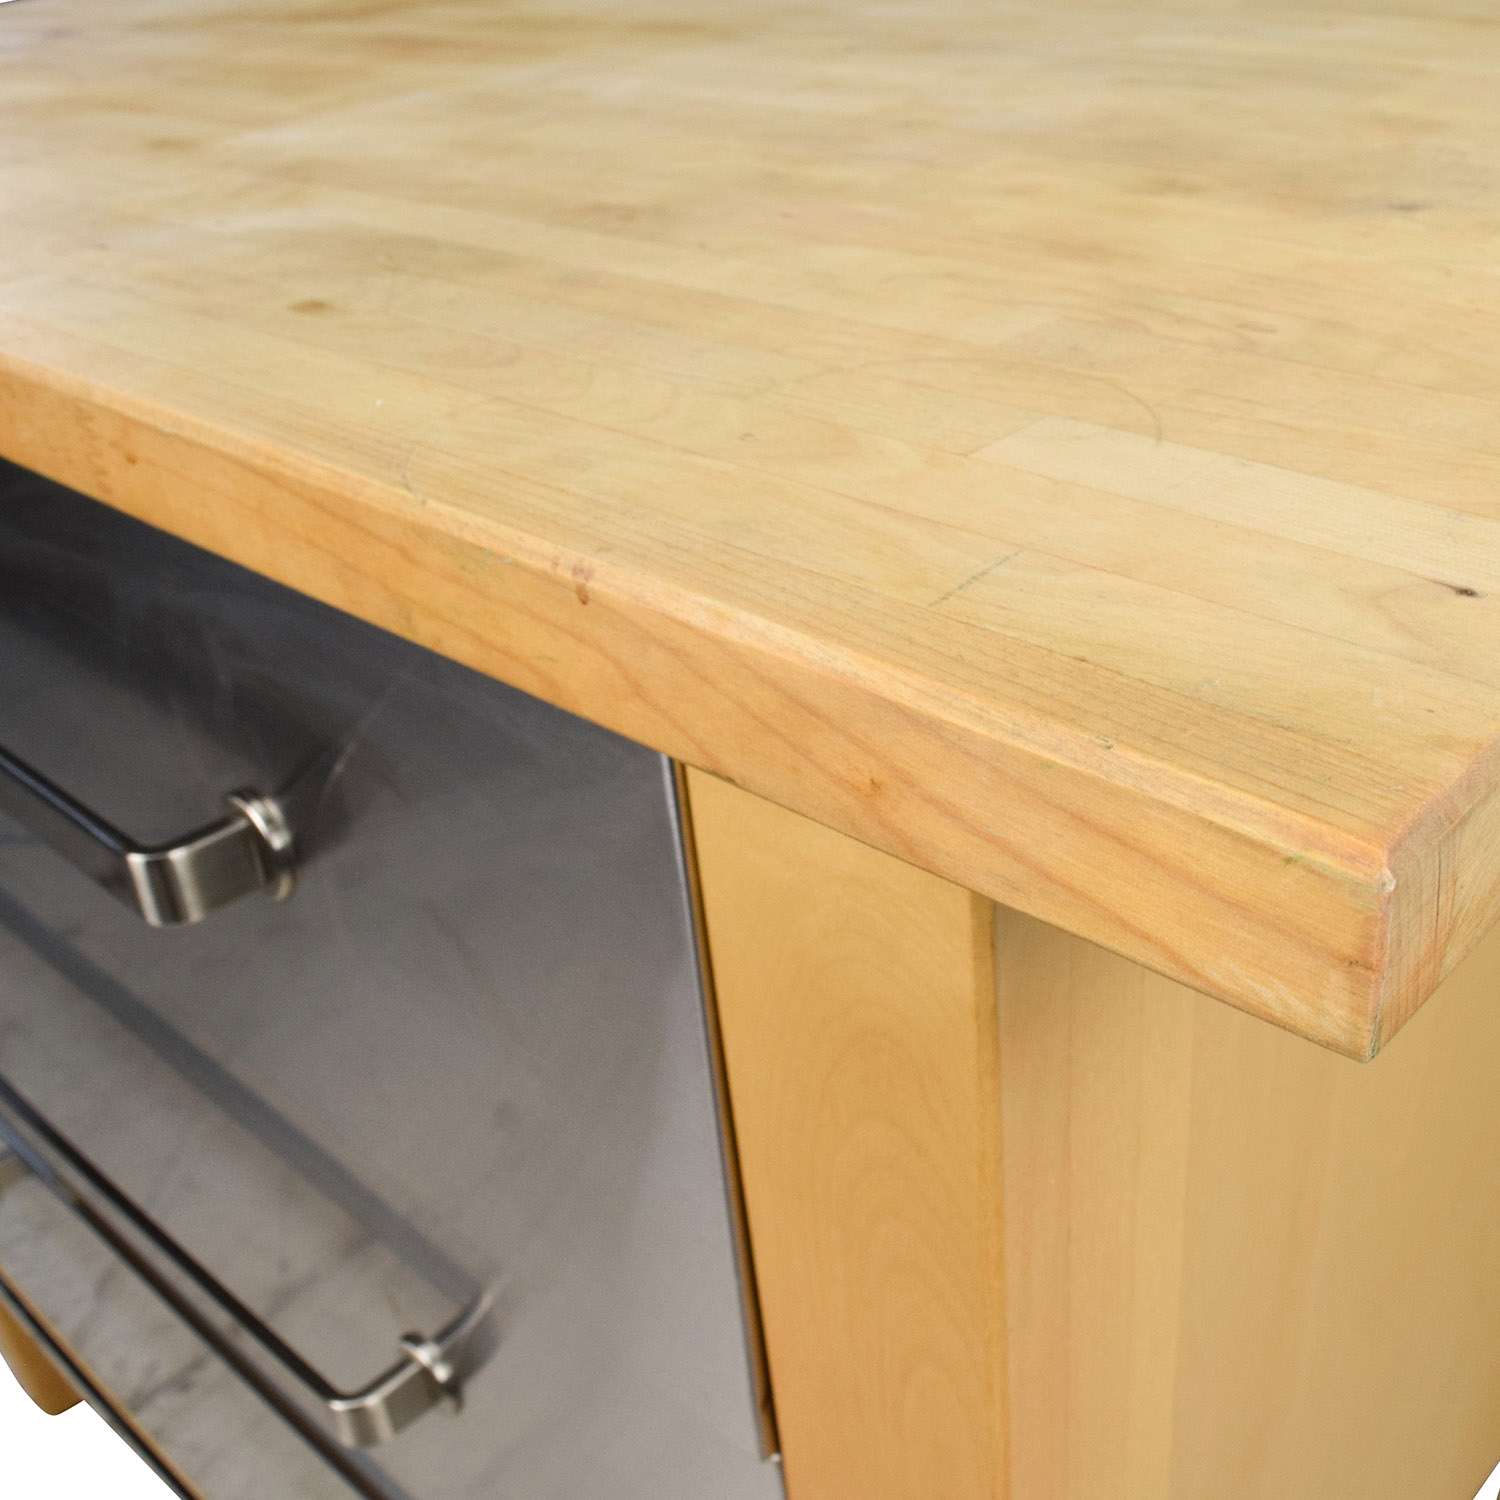 62 off ikea ikea varde kitchen butcher block island john boos kitchen islands ikea butcher block island